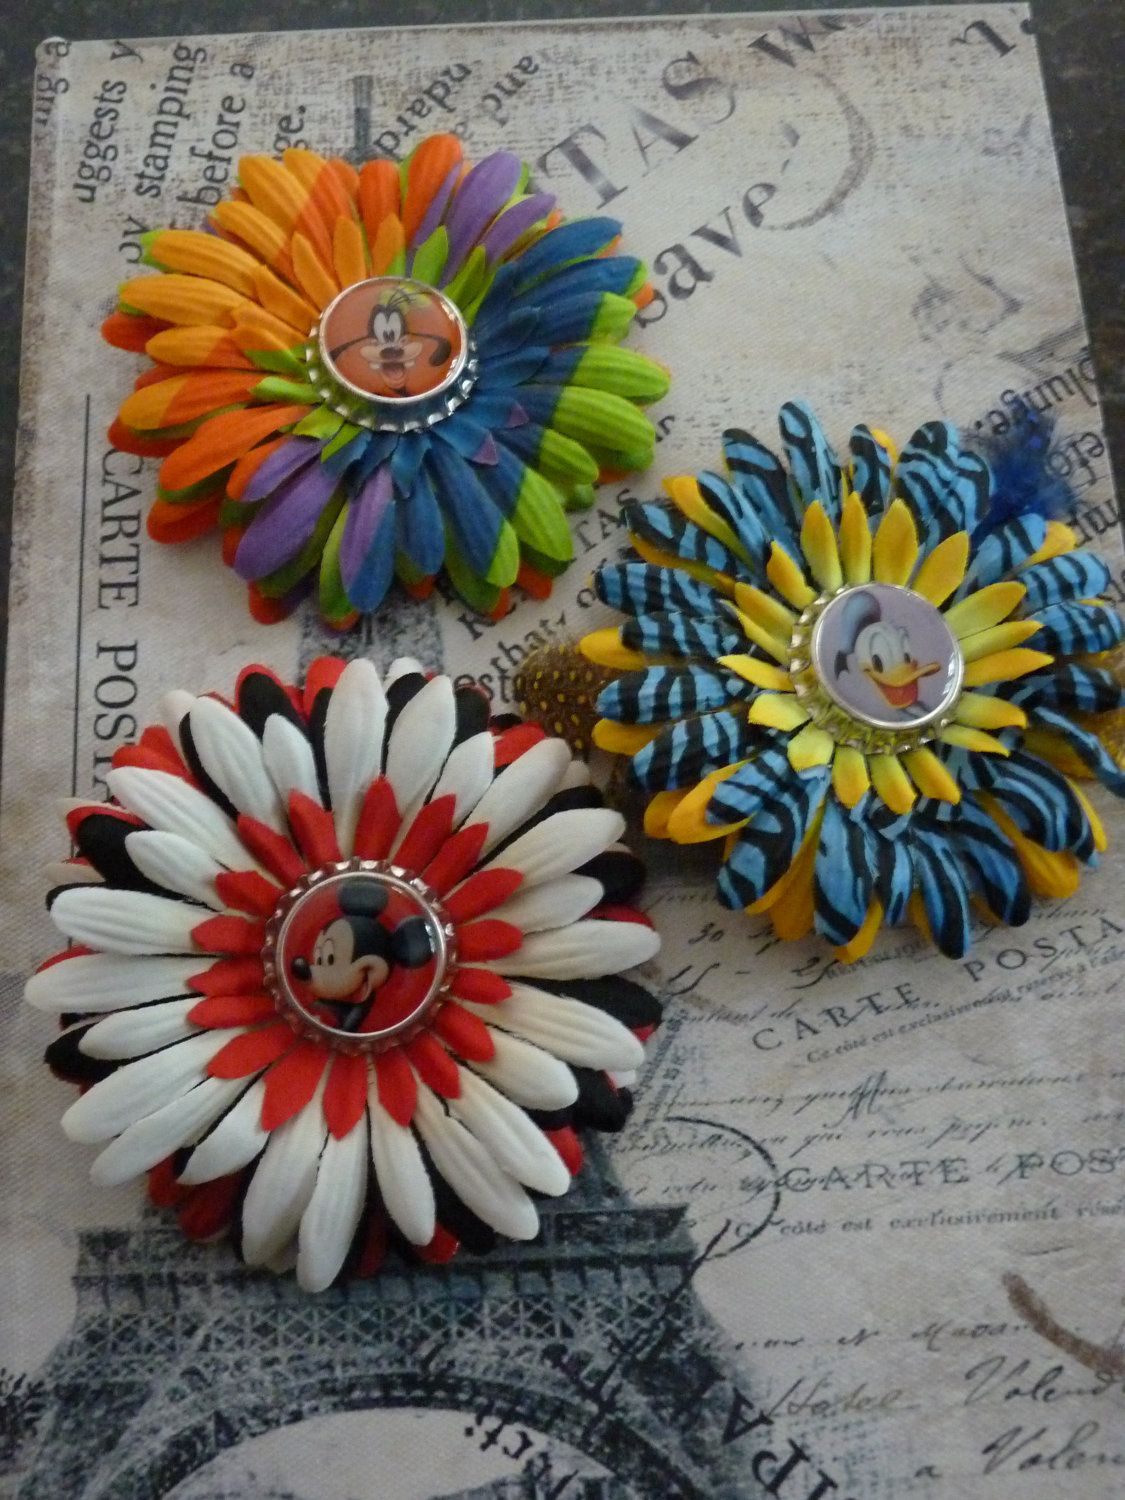 Bottle Cap Hair Bows Get Inspired Diy And Save Get Your Bottle Cap Craft Supplies At Www Fizzypops Com Bottle Cap Jewelry Cap Hair Hair Bows